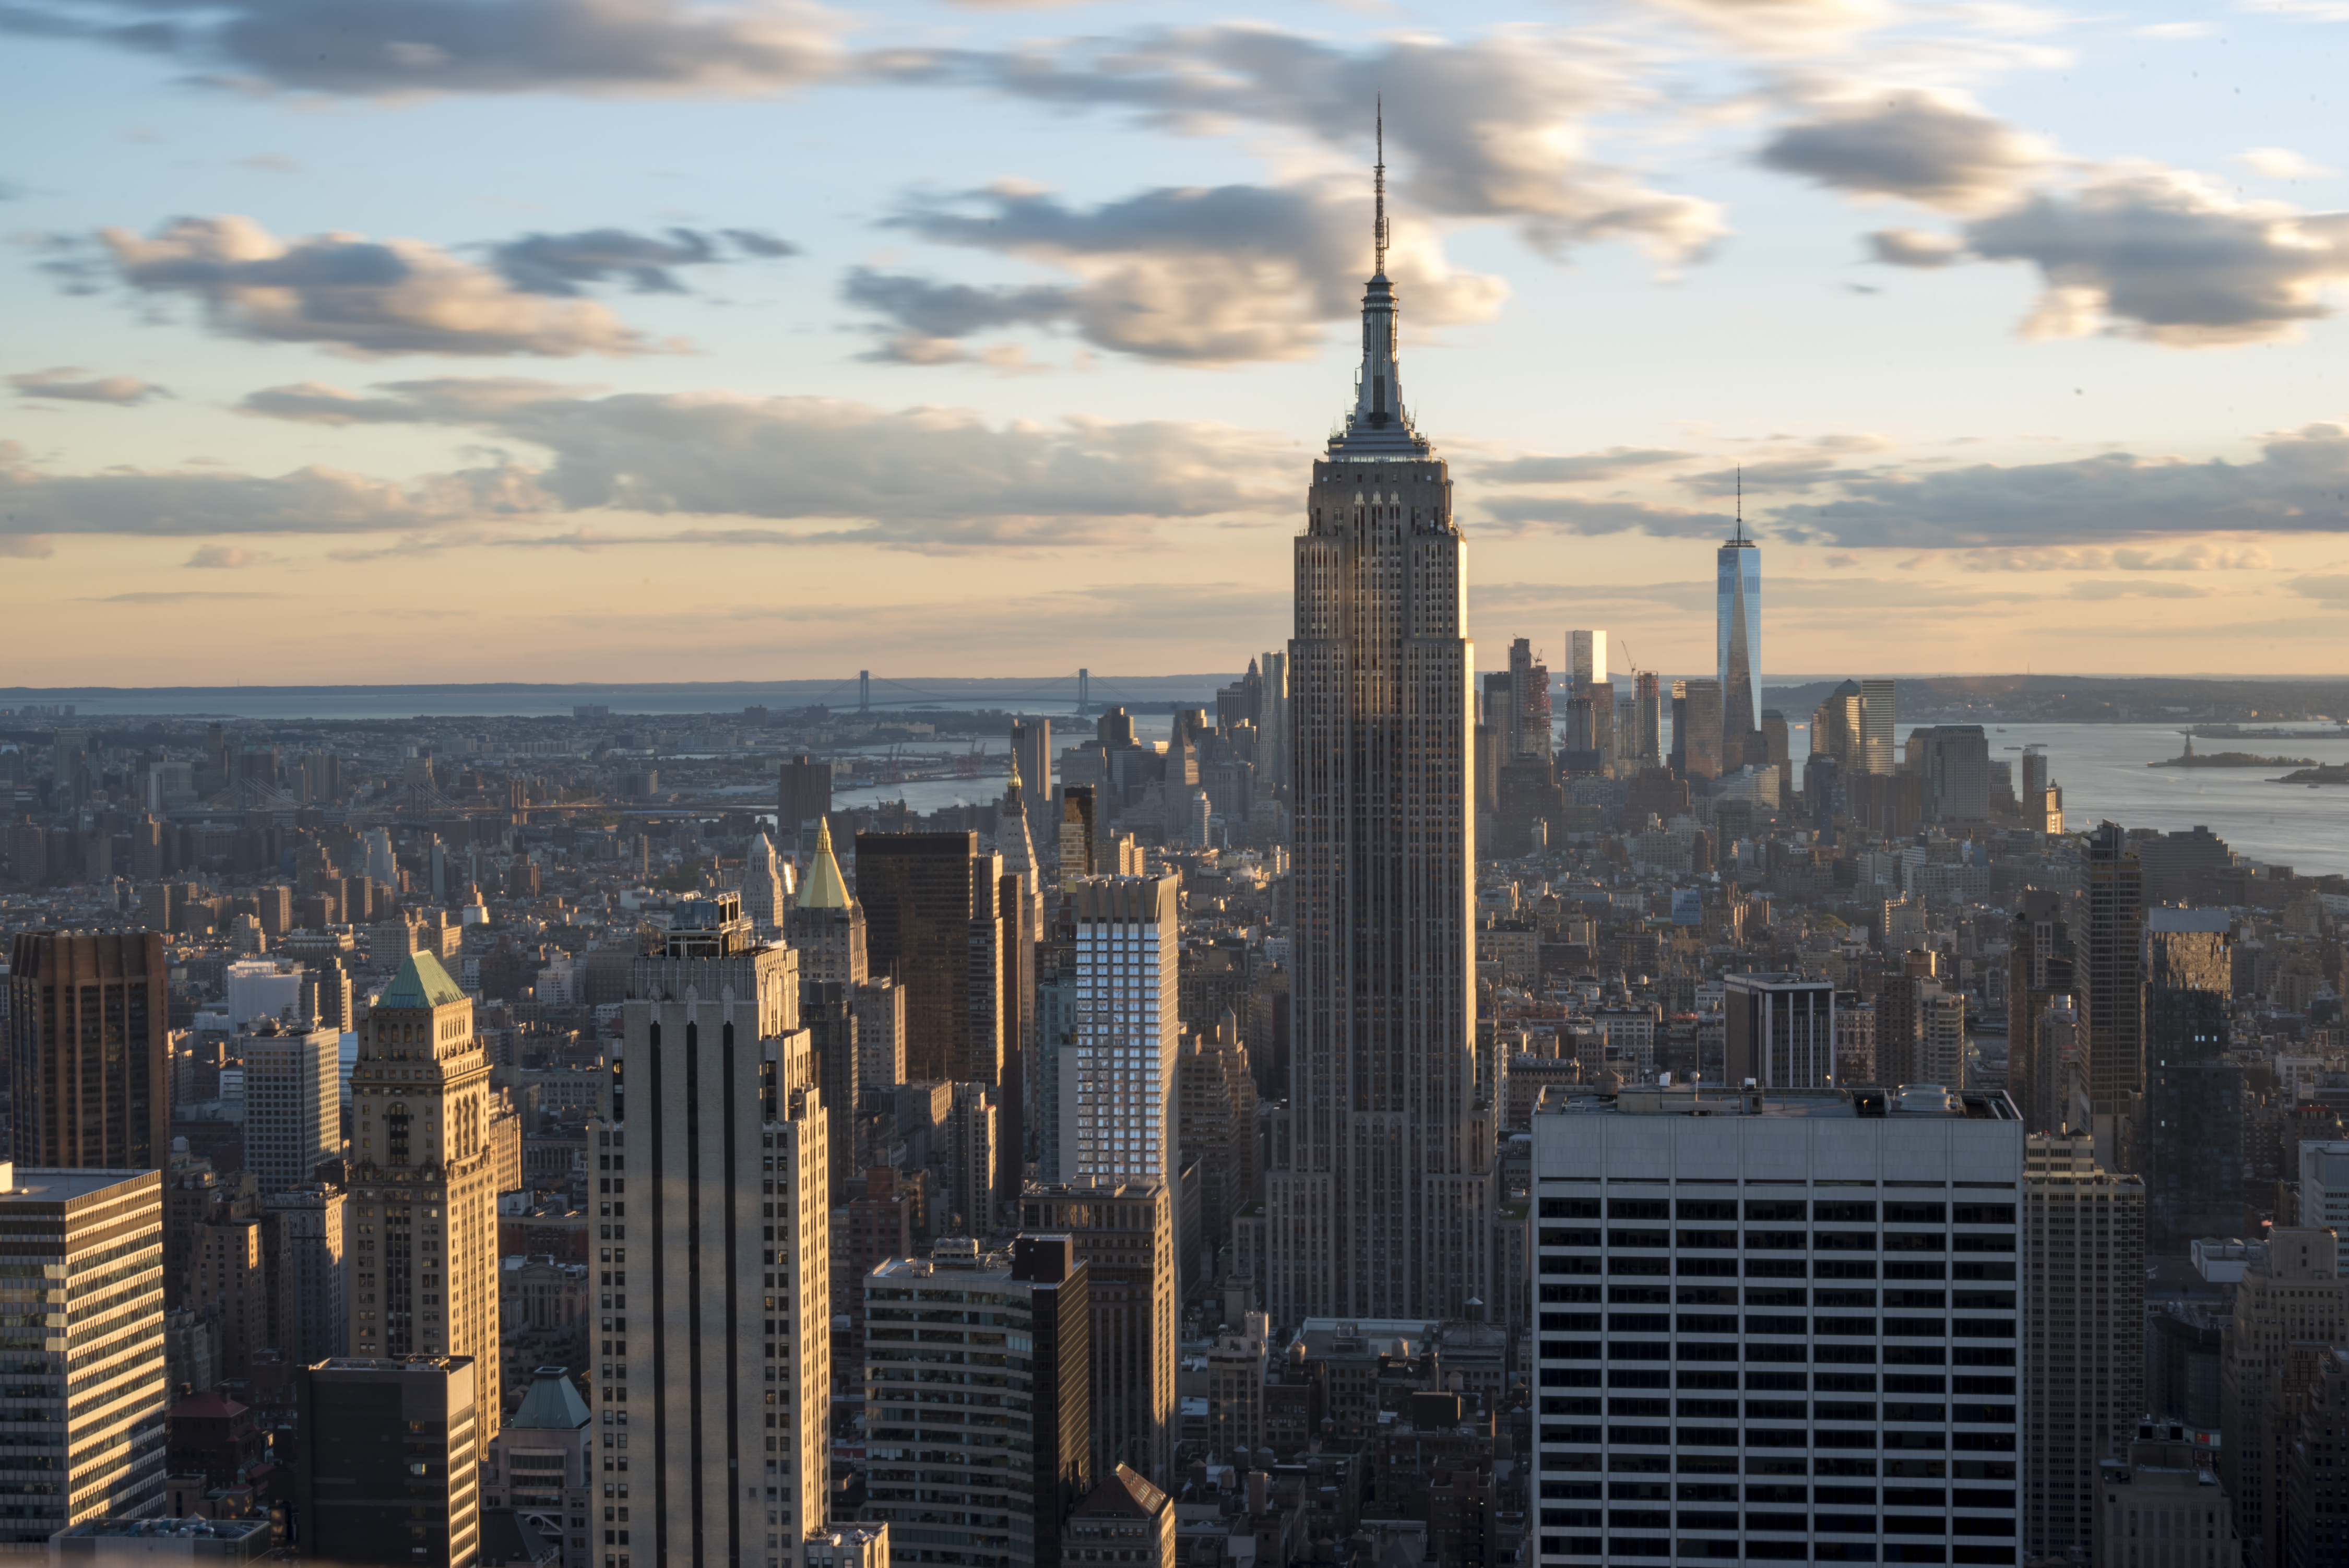 New York tours and attractions: Empire state building